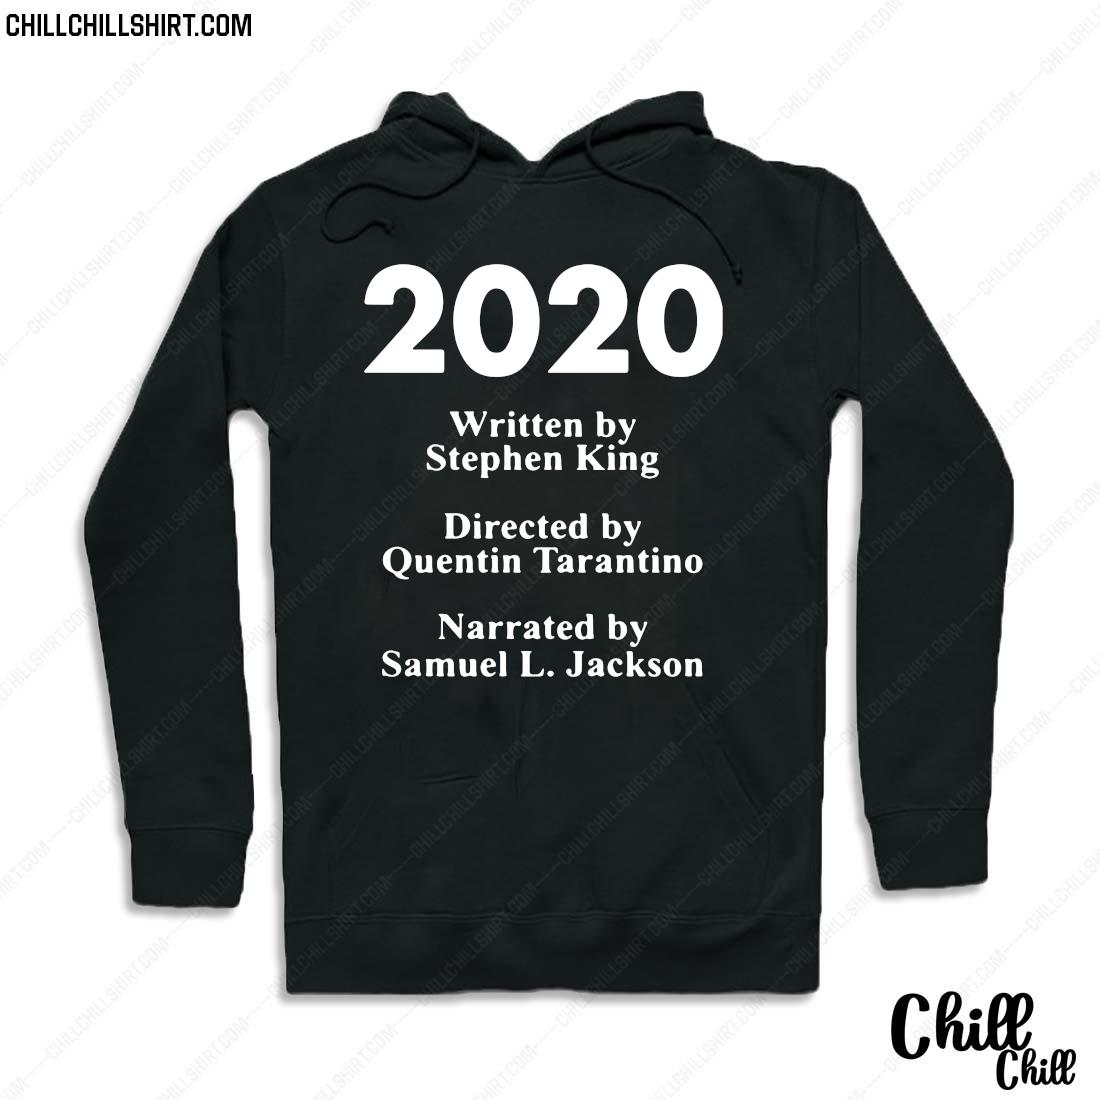 2020 Written By Stephen King Directed By Quentin Tarantino Narrated By Samuel L. Jackson Shirt Hoodie